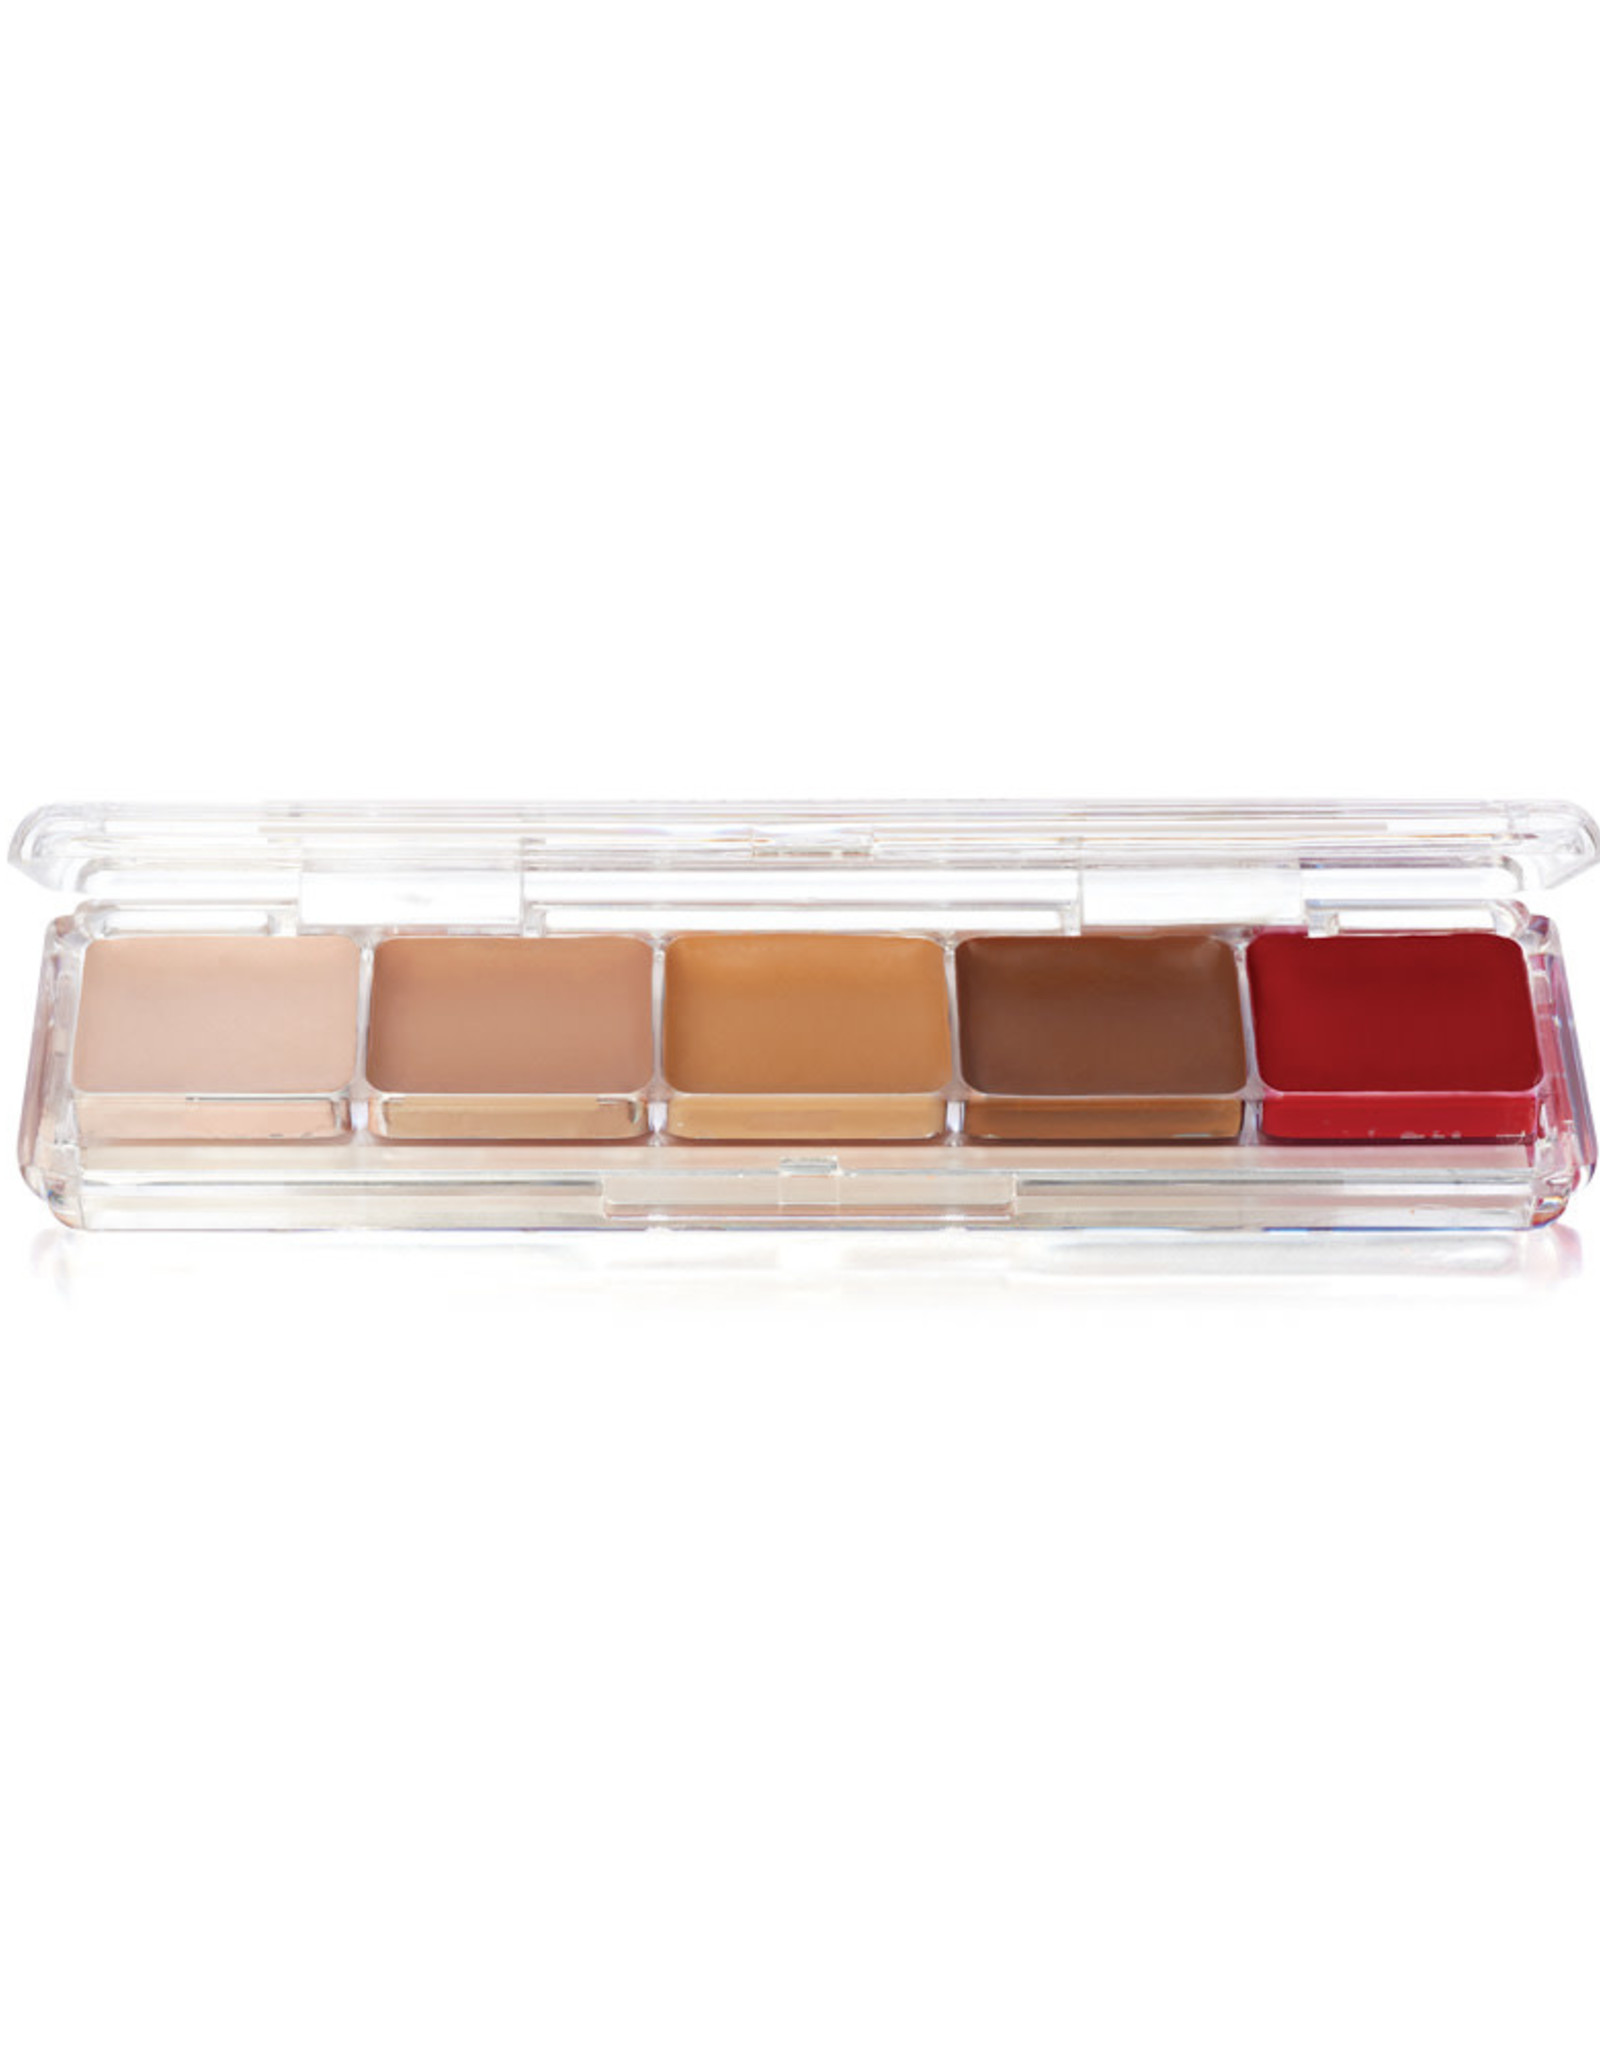 Ben Nye PALETTE-ALCOHOL CONCEALOR PALETTE-TATTOO COVER, 5 SHADES